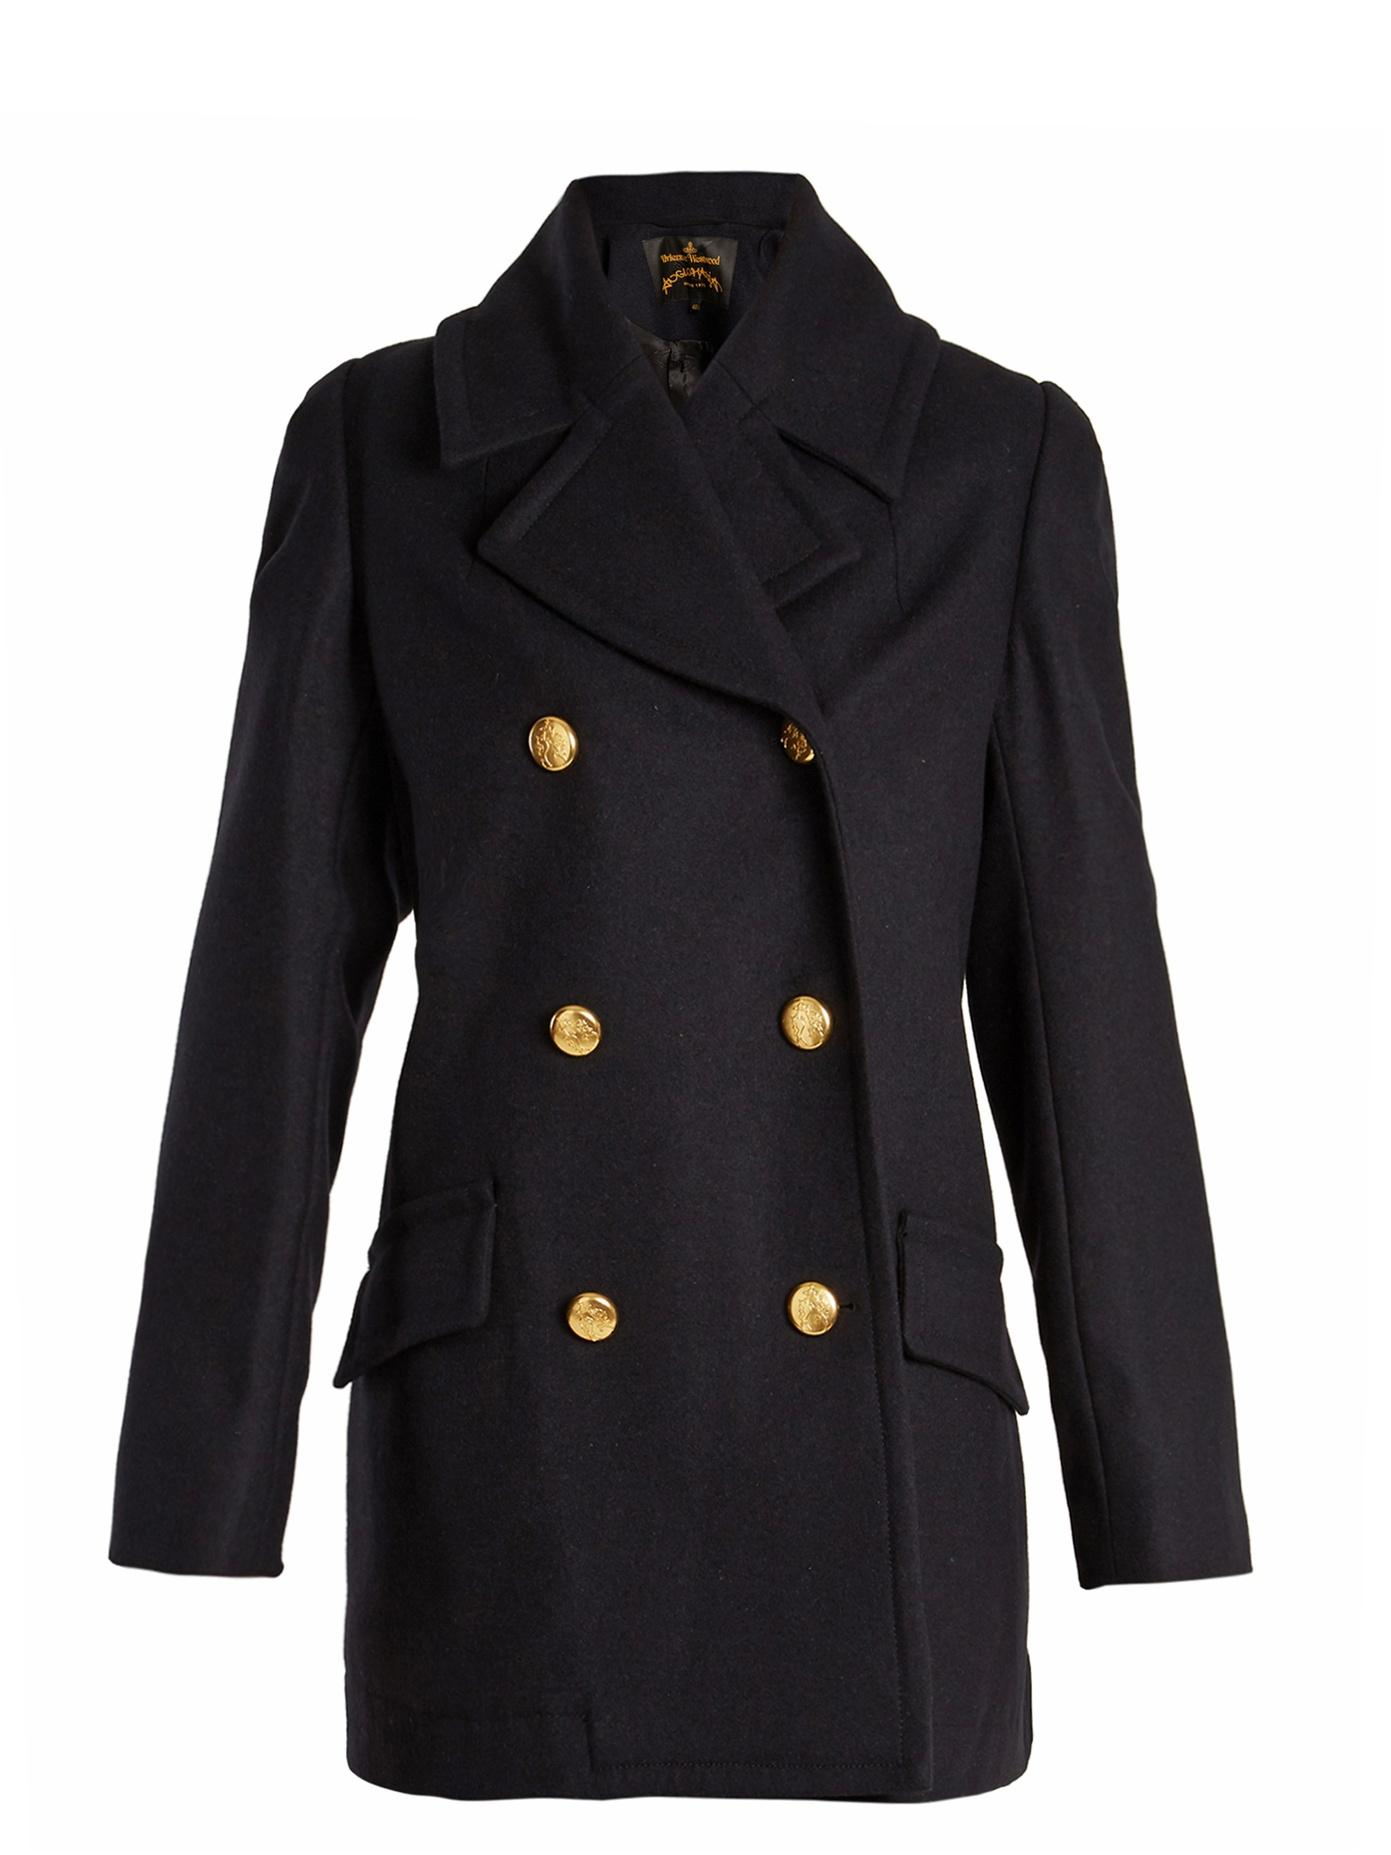 Vivienne Westwood Anglomania Mosto Double-Breasted Melton Wool Coat In Navy